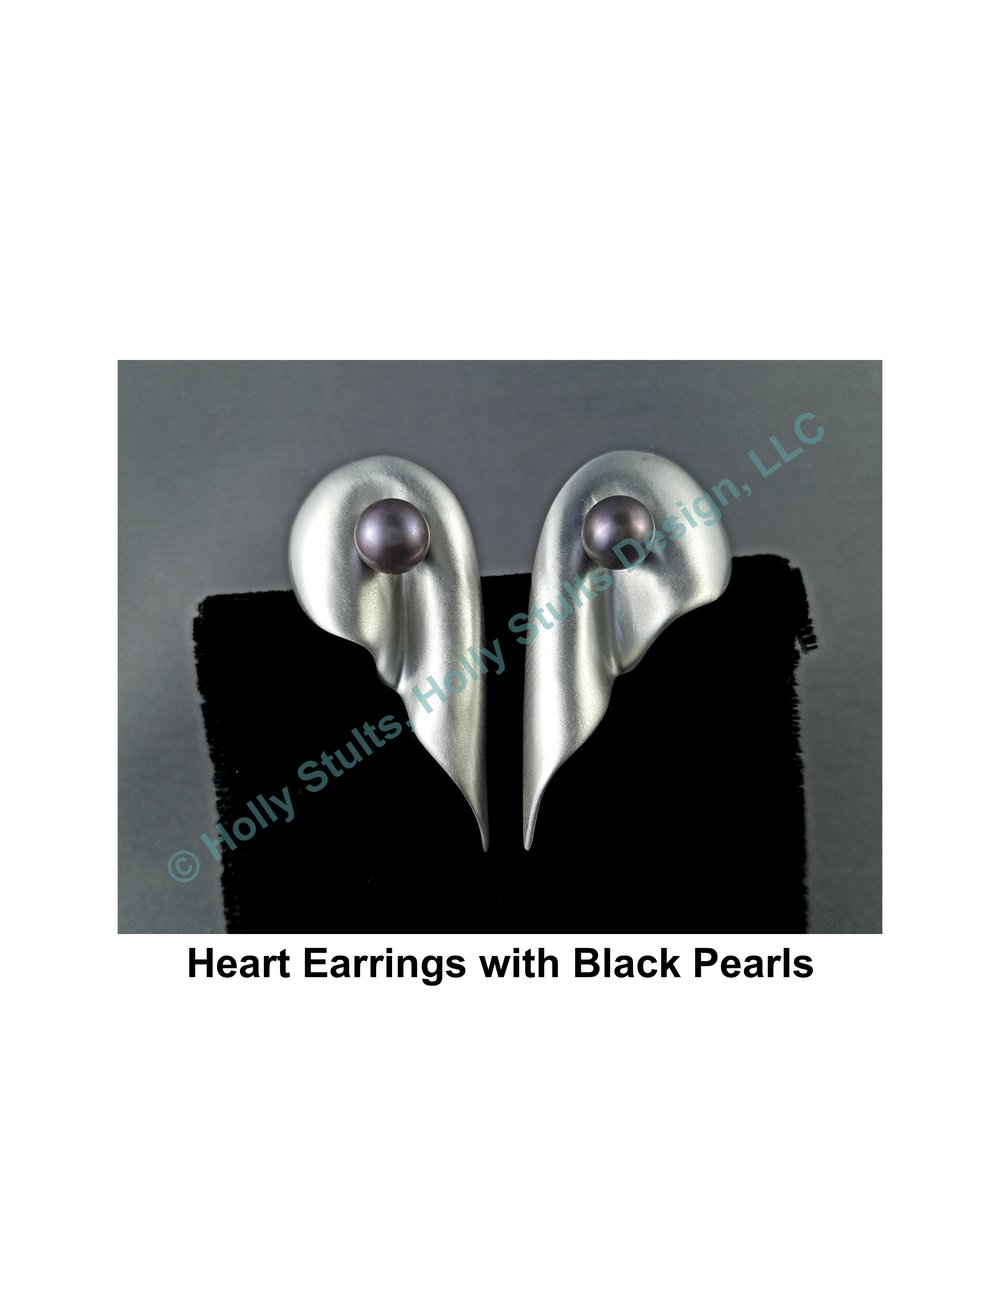 Heart Earrings with Black Pearls.jpg